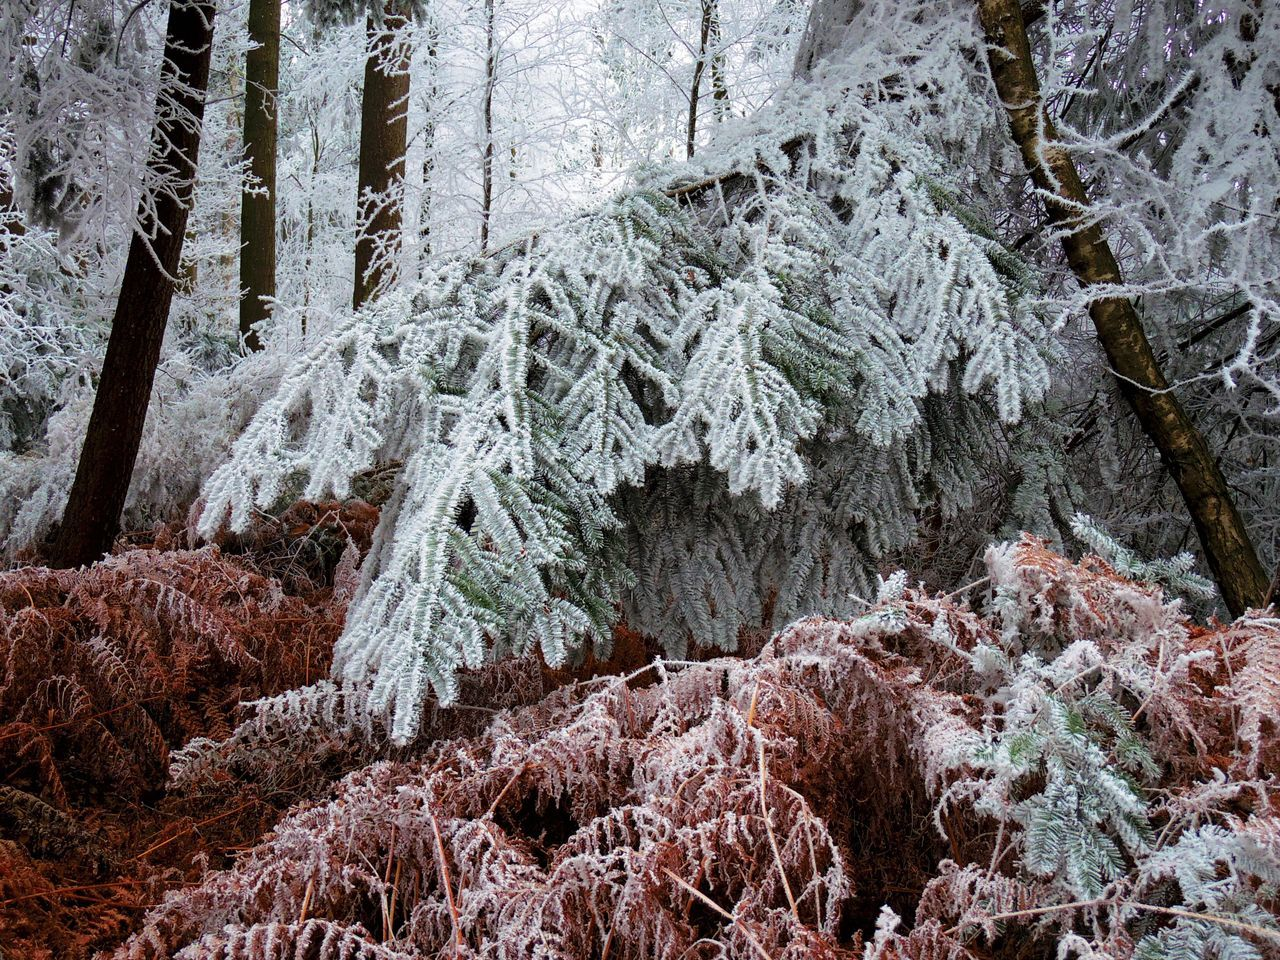 Frozen Tree Forest Winter Nature Beauty In Nature Plant Outdoors Growth Cold Temperature Landscape Scenics Snow